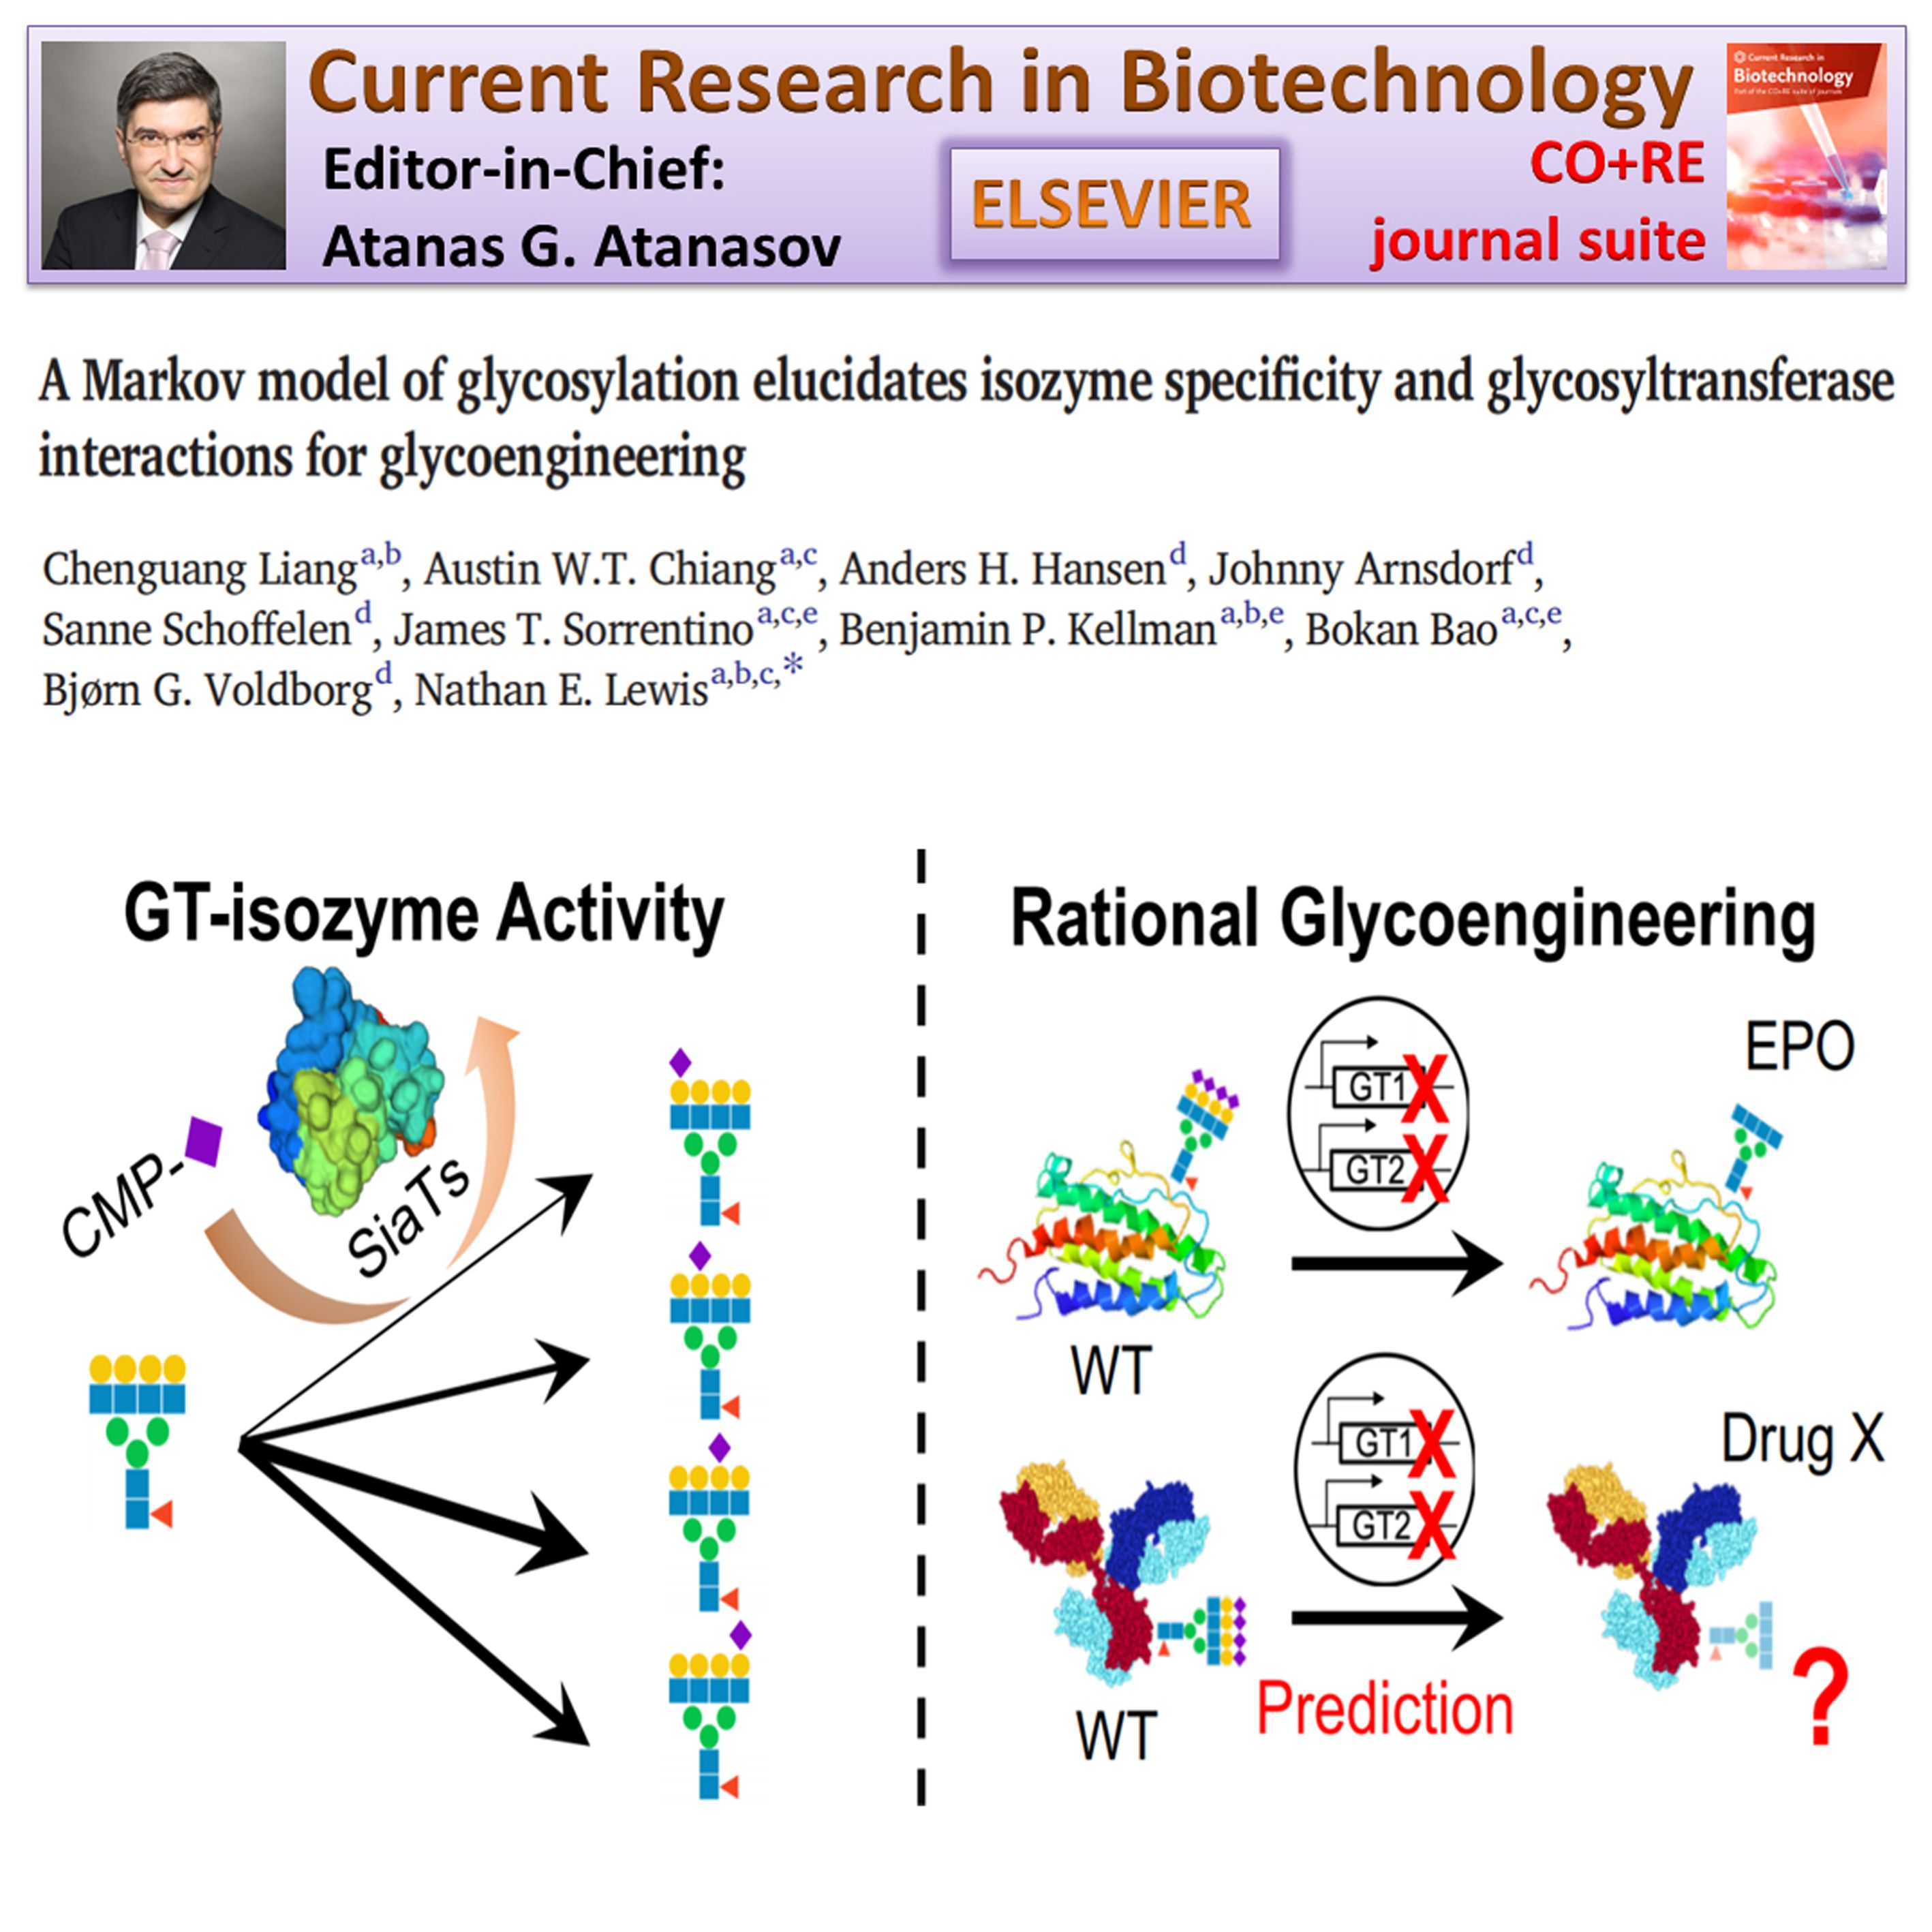 A Markov Model Of Glycosylation Elucidates Isozyme Specificity And